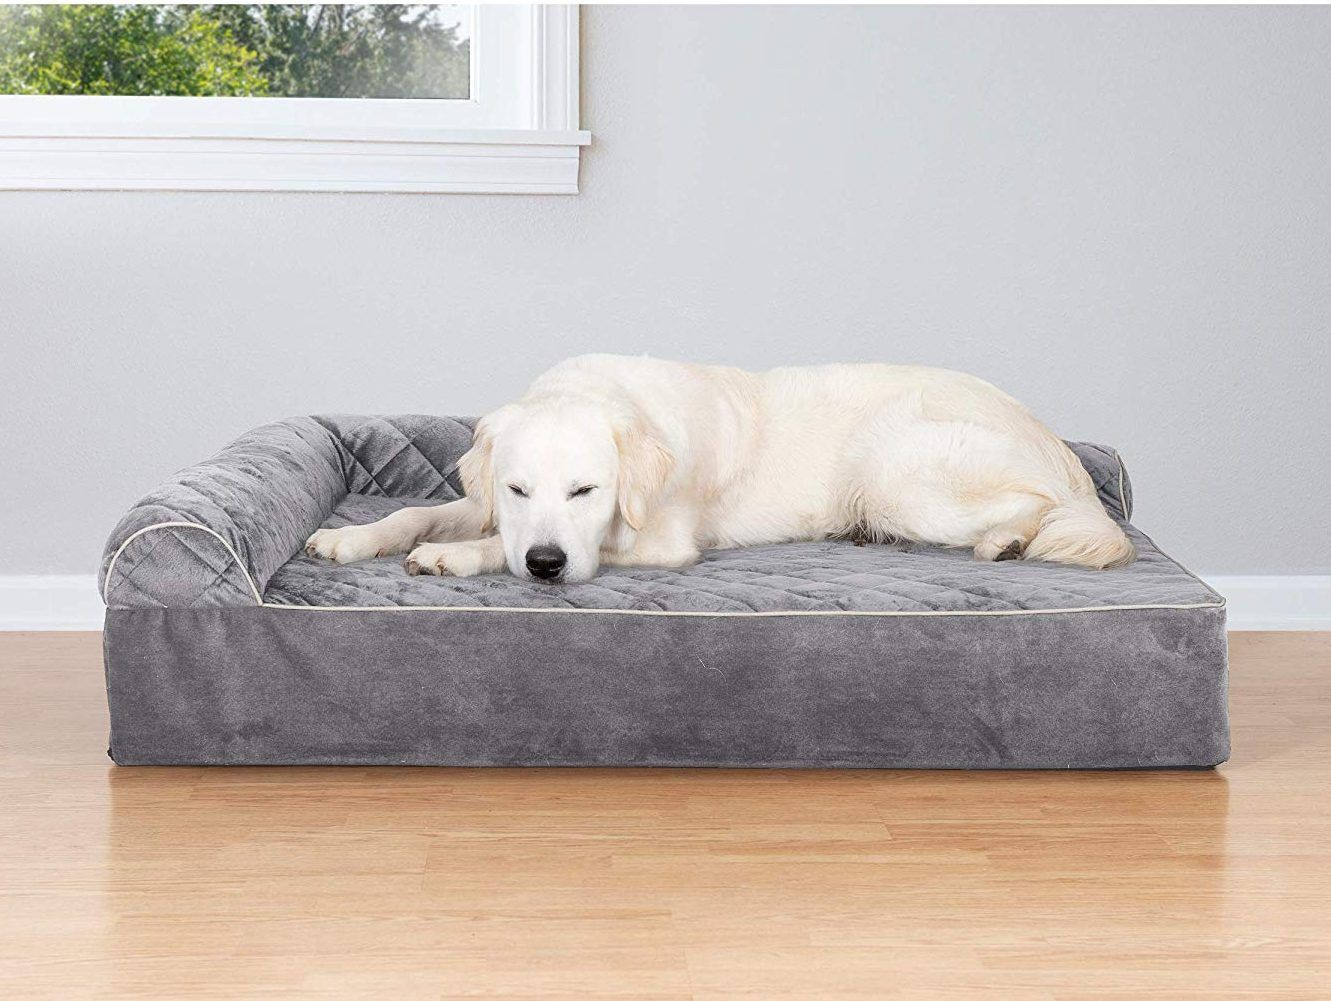 Furhaven Orthopedic Goliath Quilted Faux Fur Velvet Chaise Couch Pet Bed Petagadget Dog Sofa Bed Dog Lounge Bed Couch Pet Bed